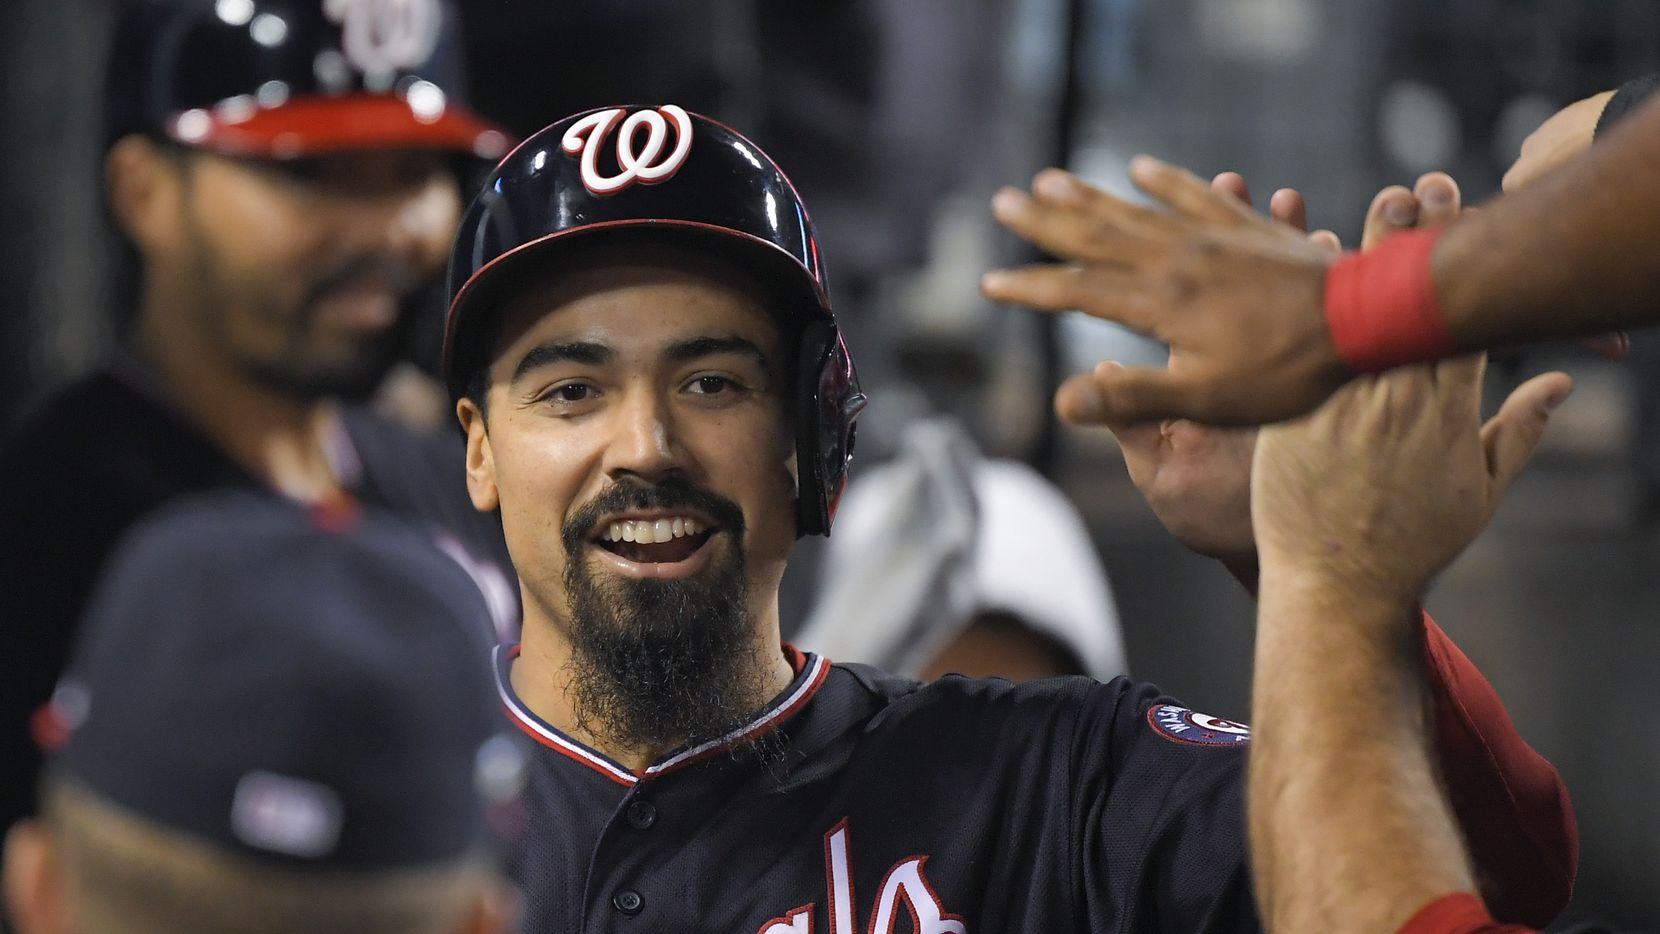 Washington Nationals' Anthony Rendon celebrates in the dugout after scoring on a single by Juan Soto during the sixth inning in Game 5 of the baseball team's National League Division Series against the Los Angeles Dodgers on Wednesday, Oct. 9, 2019, in Los Angeles. (AP Photo/Mark J. Terrill)